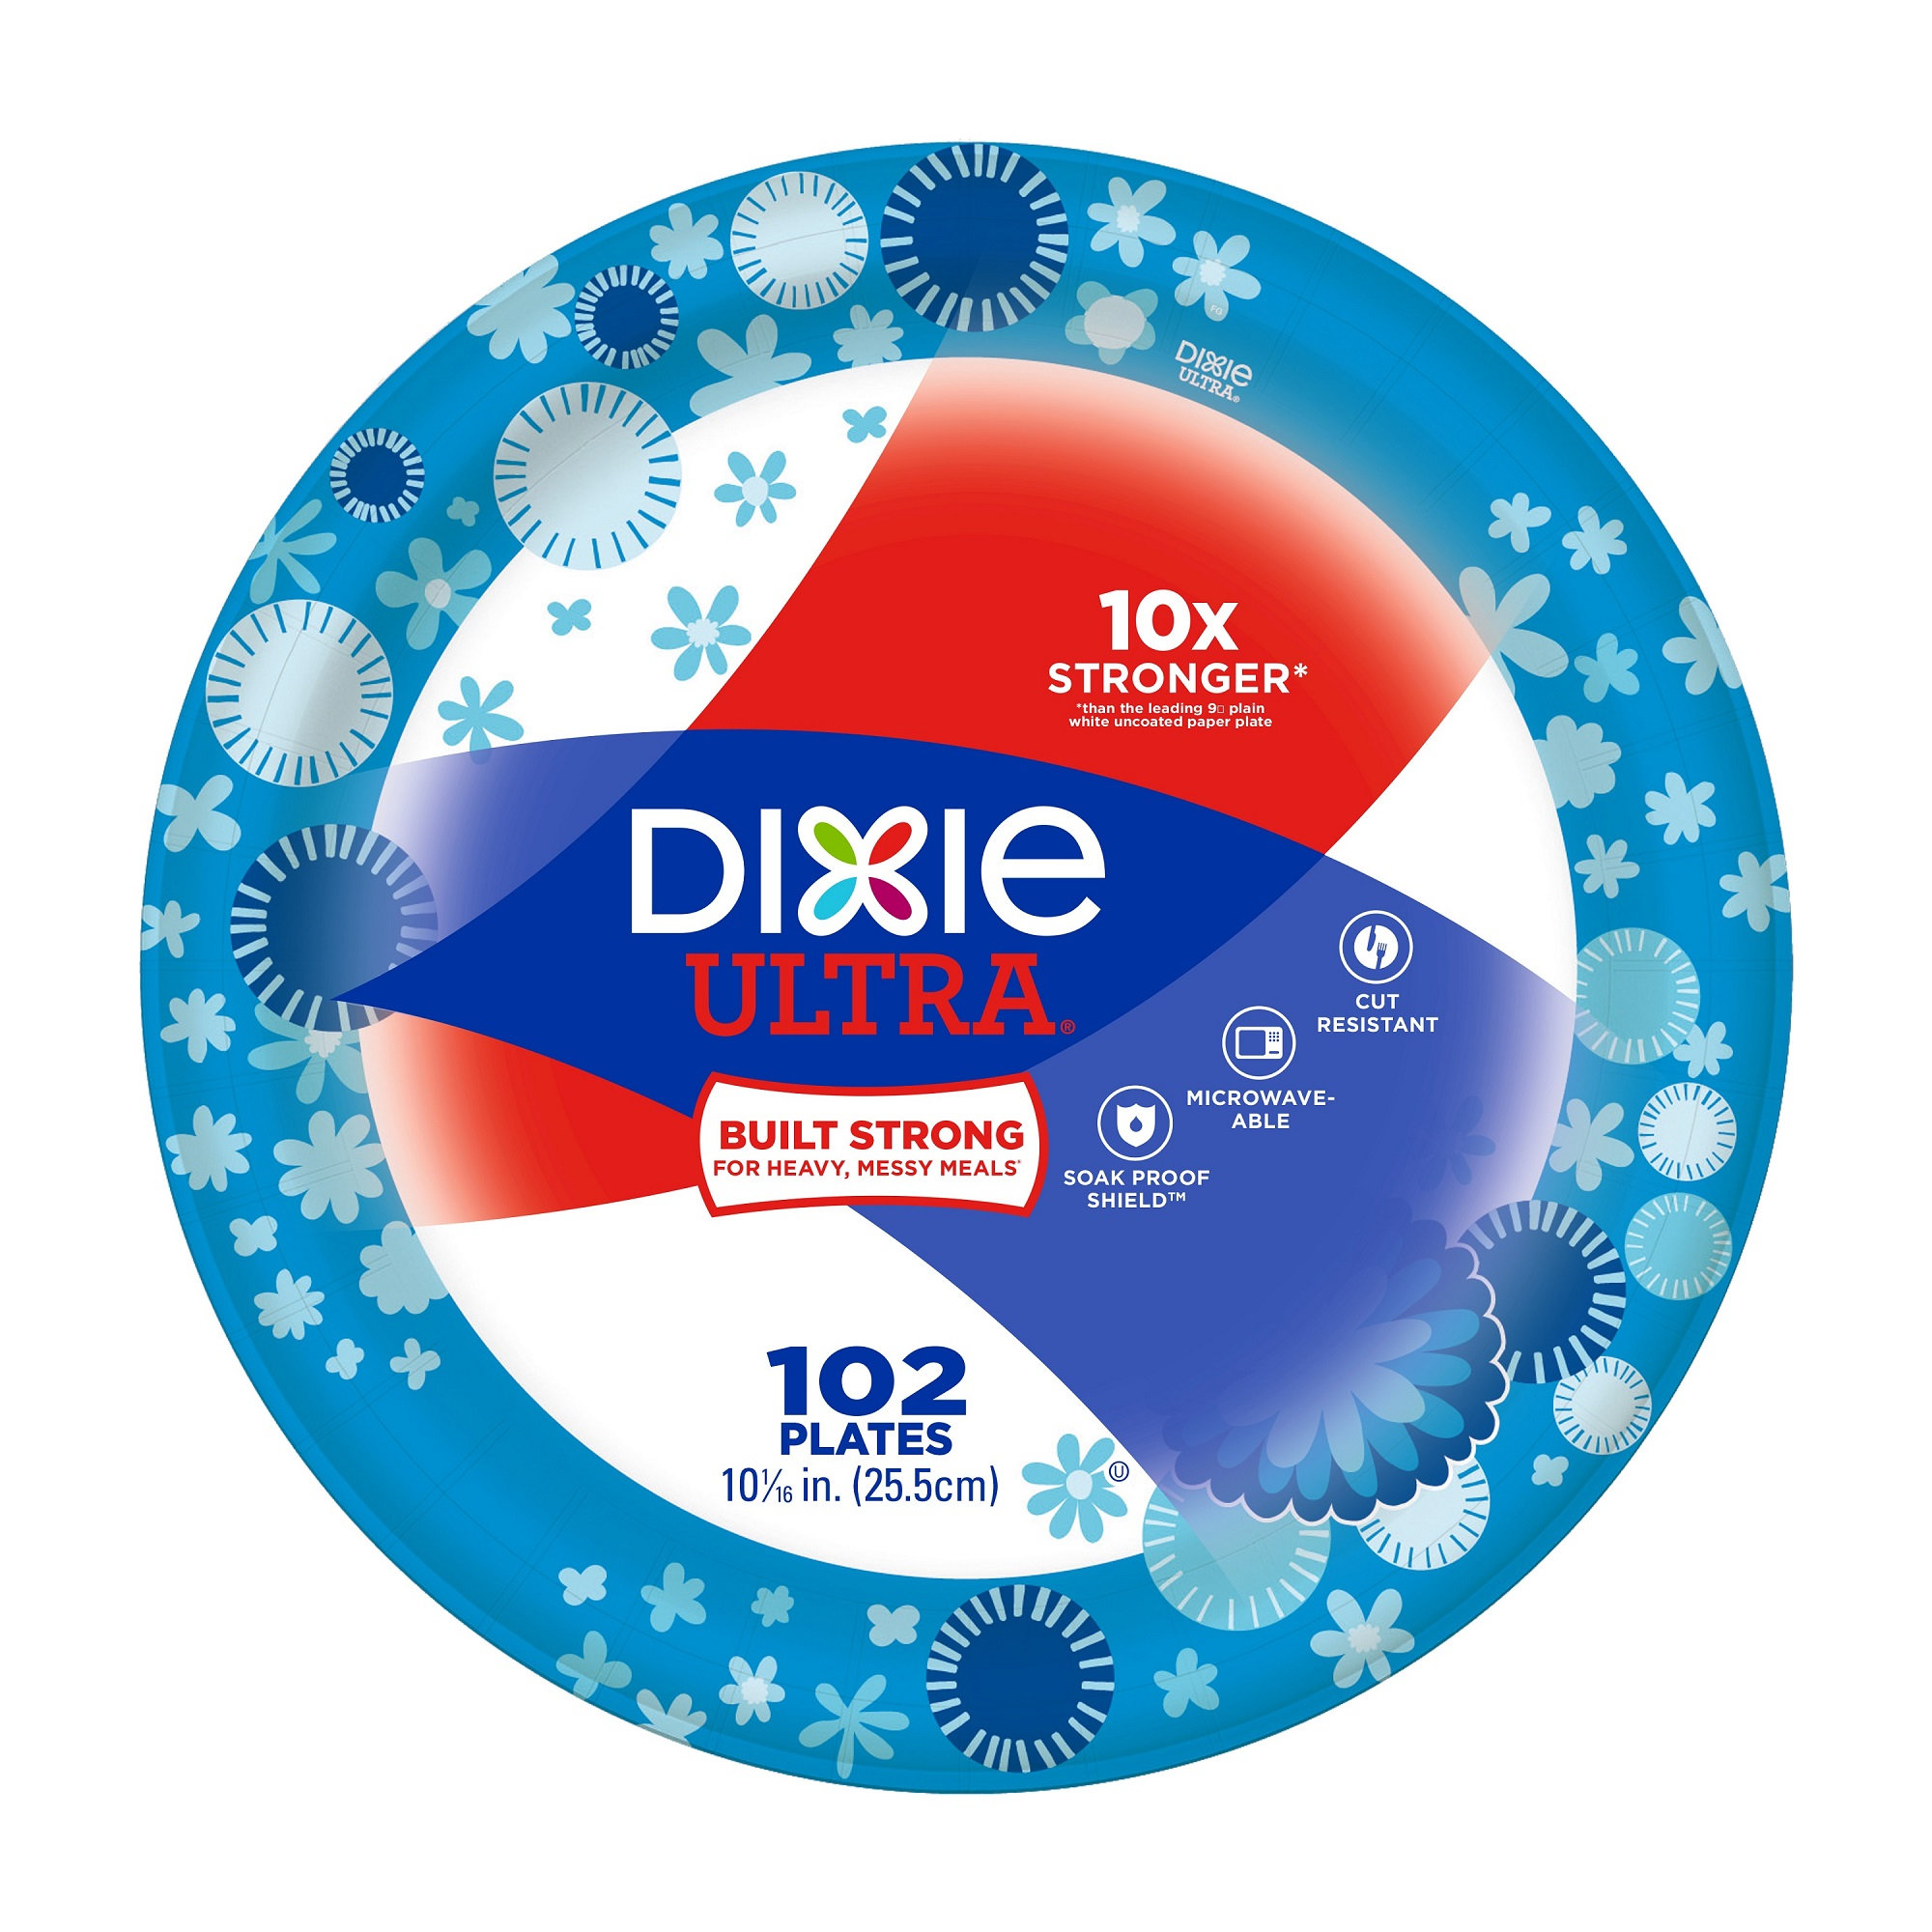 Dixie Ultra Paper Plates10 in. 102 count - Walmart.com. Dixie Ultra Paper Plates 10 In 102 Count Walmart Com  sc 1 st  Best Image Engine & Amusing Dixie Ultra Paper Plates Walmart Contemporary - Best Image ...